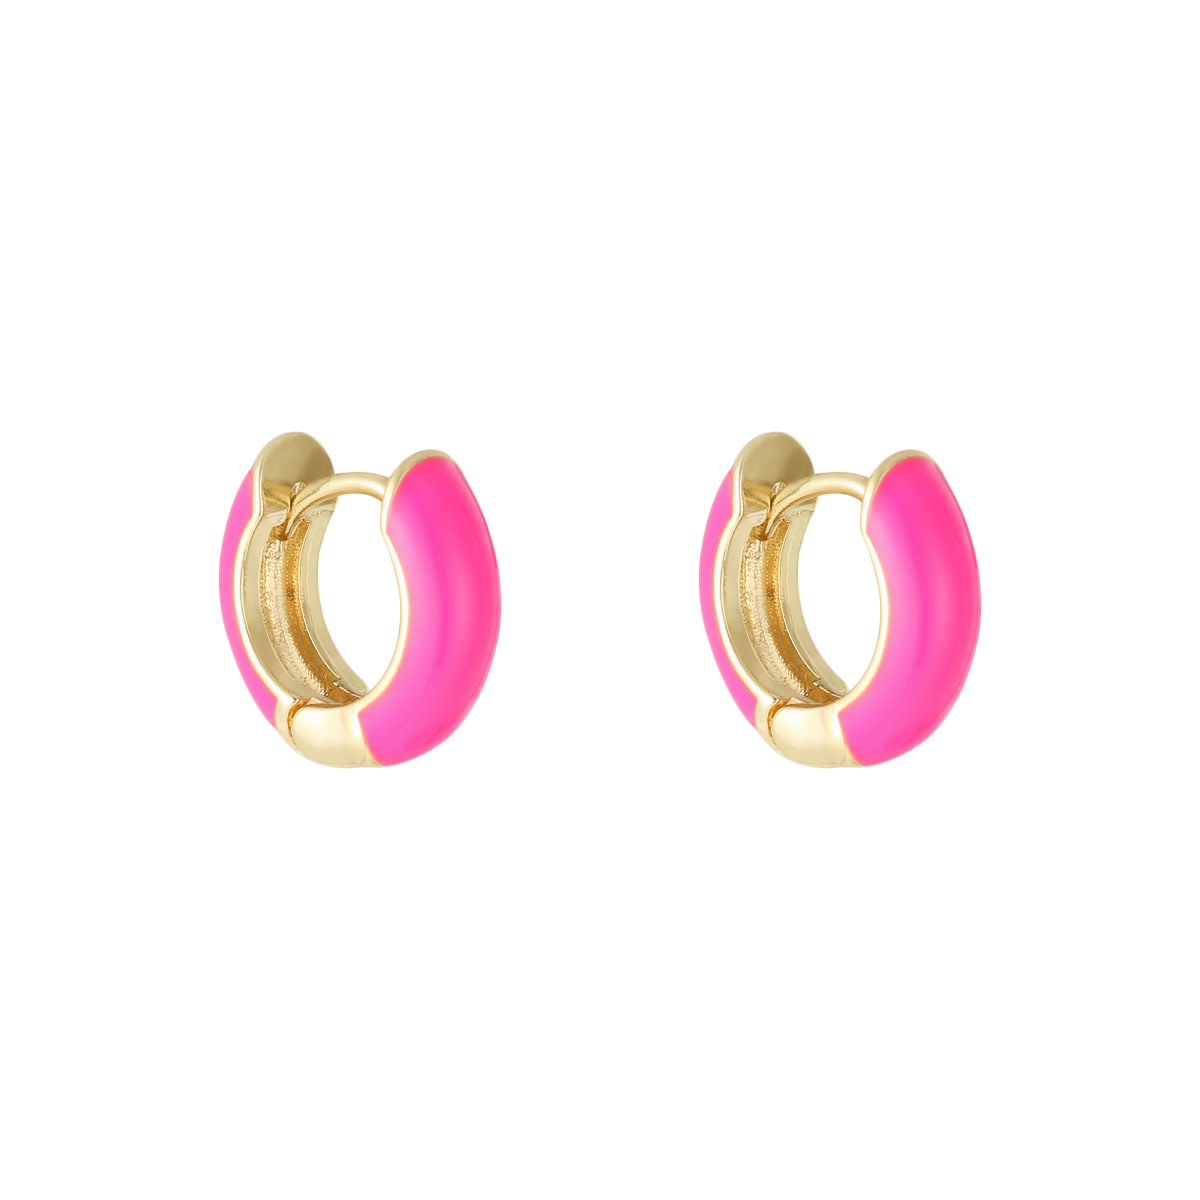 With love Earrings happy color - fushia